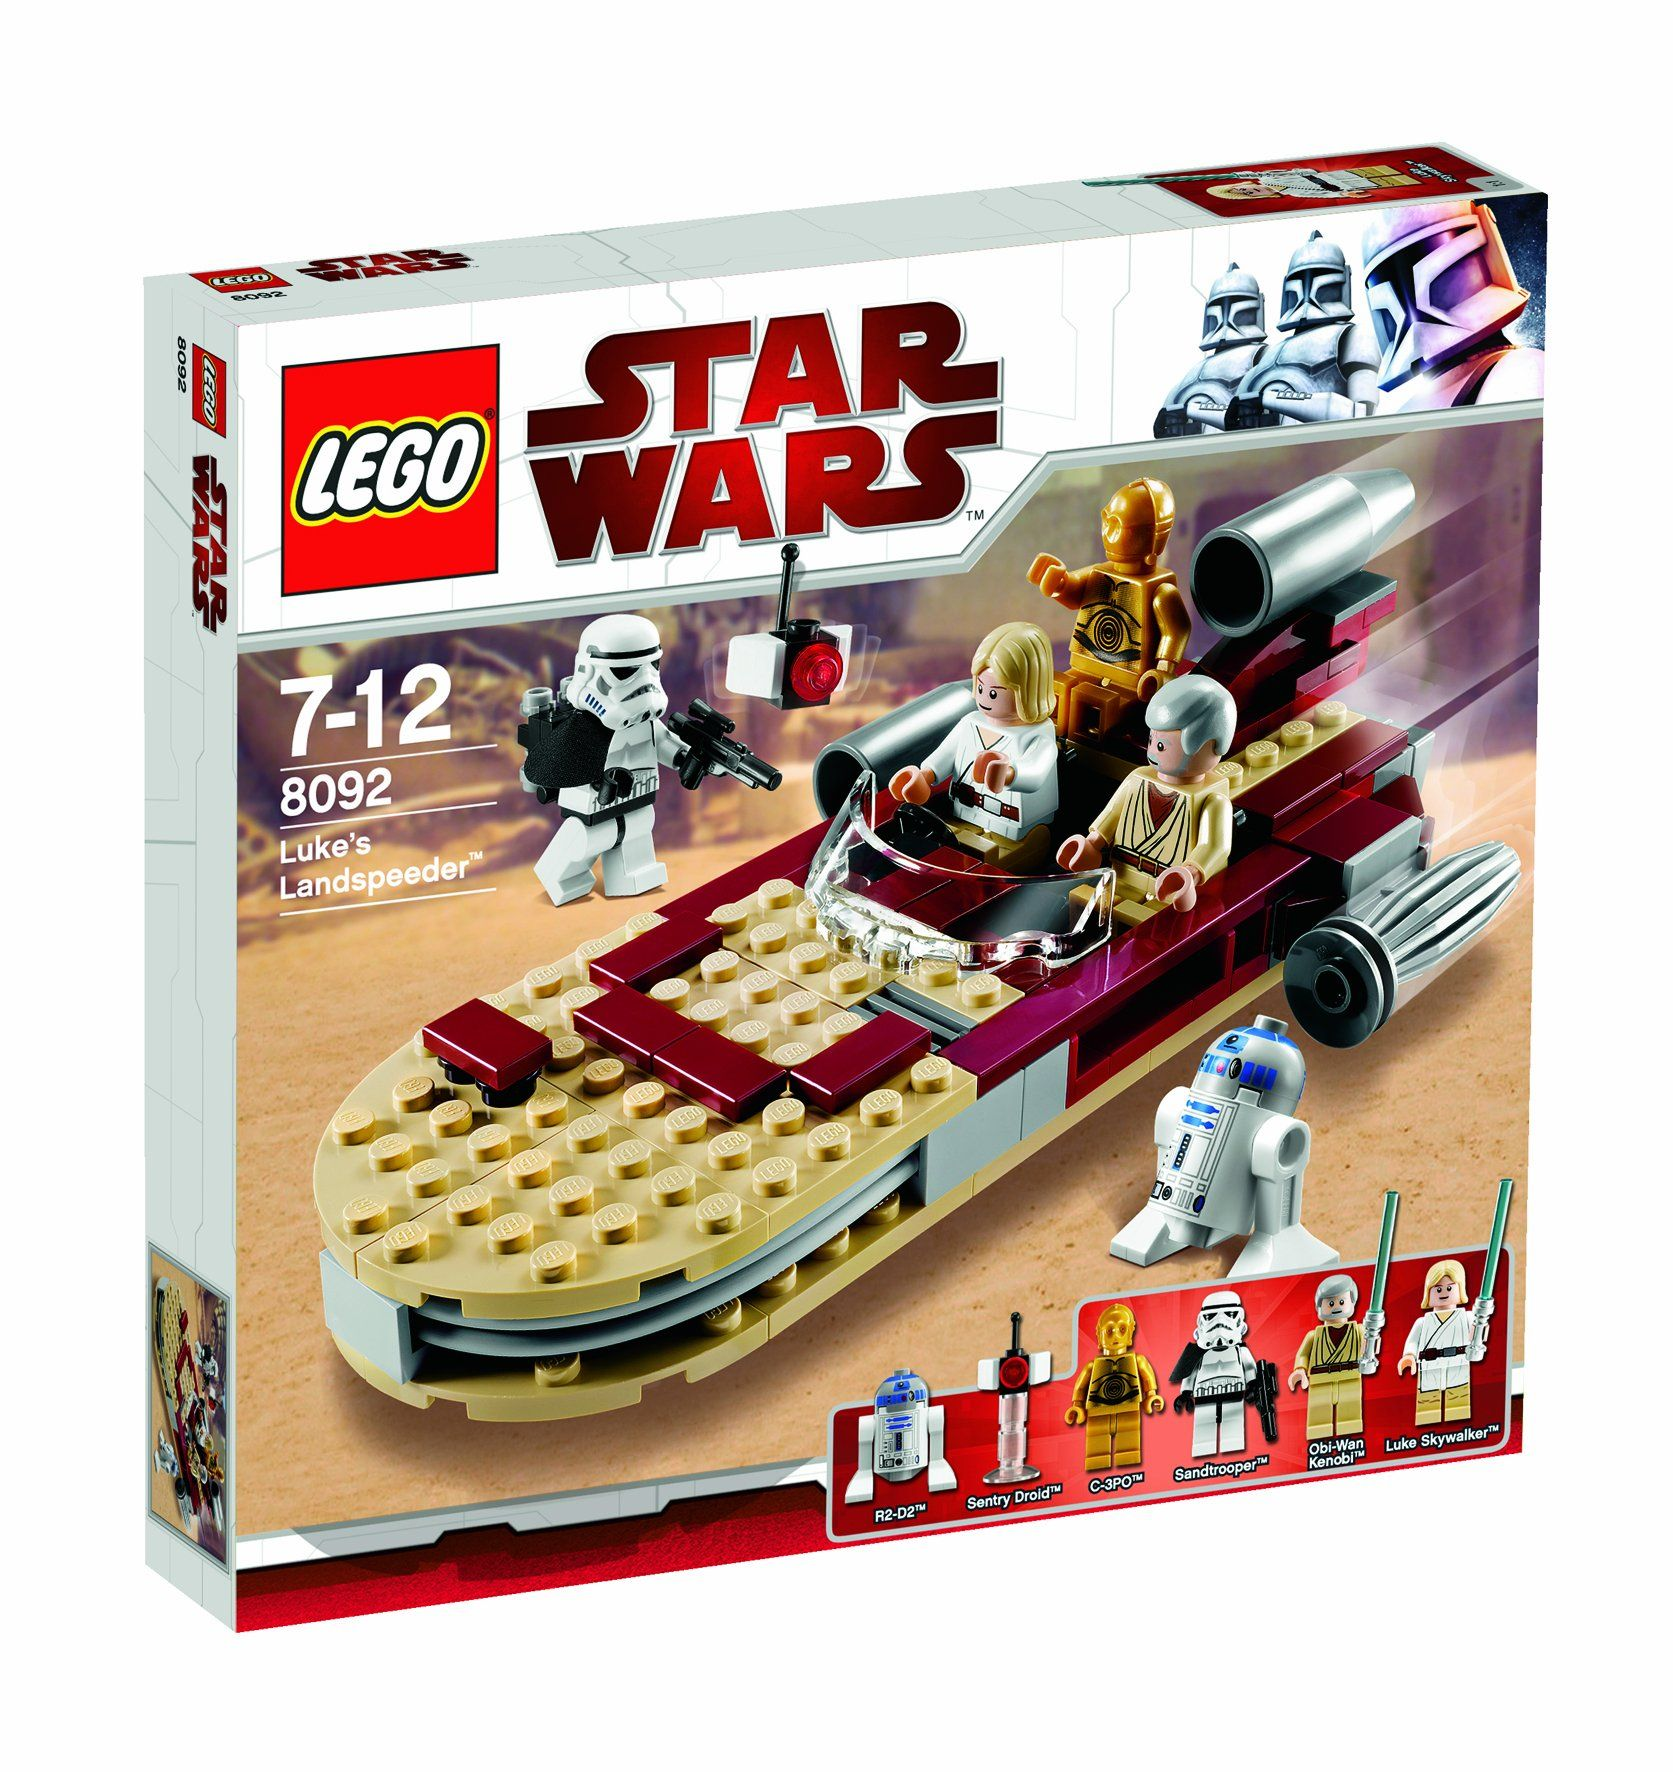 17 best images about lego sets on pinterest coming soon lego and calamari